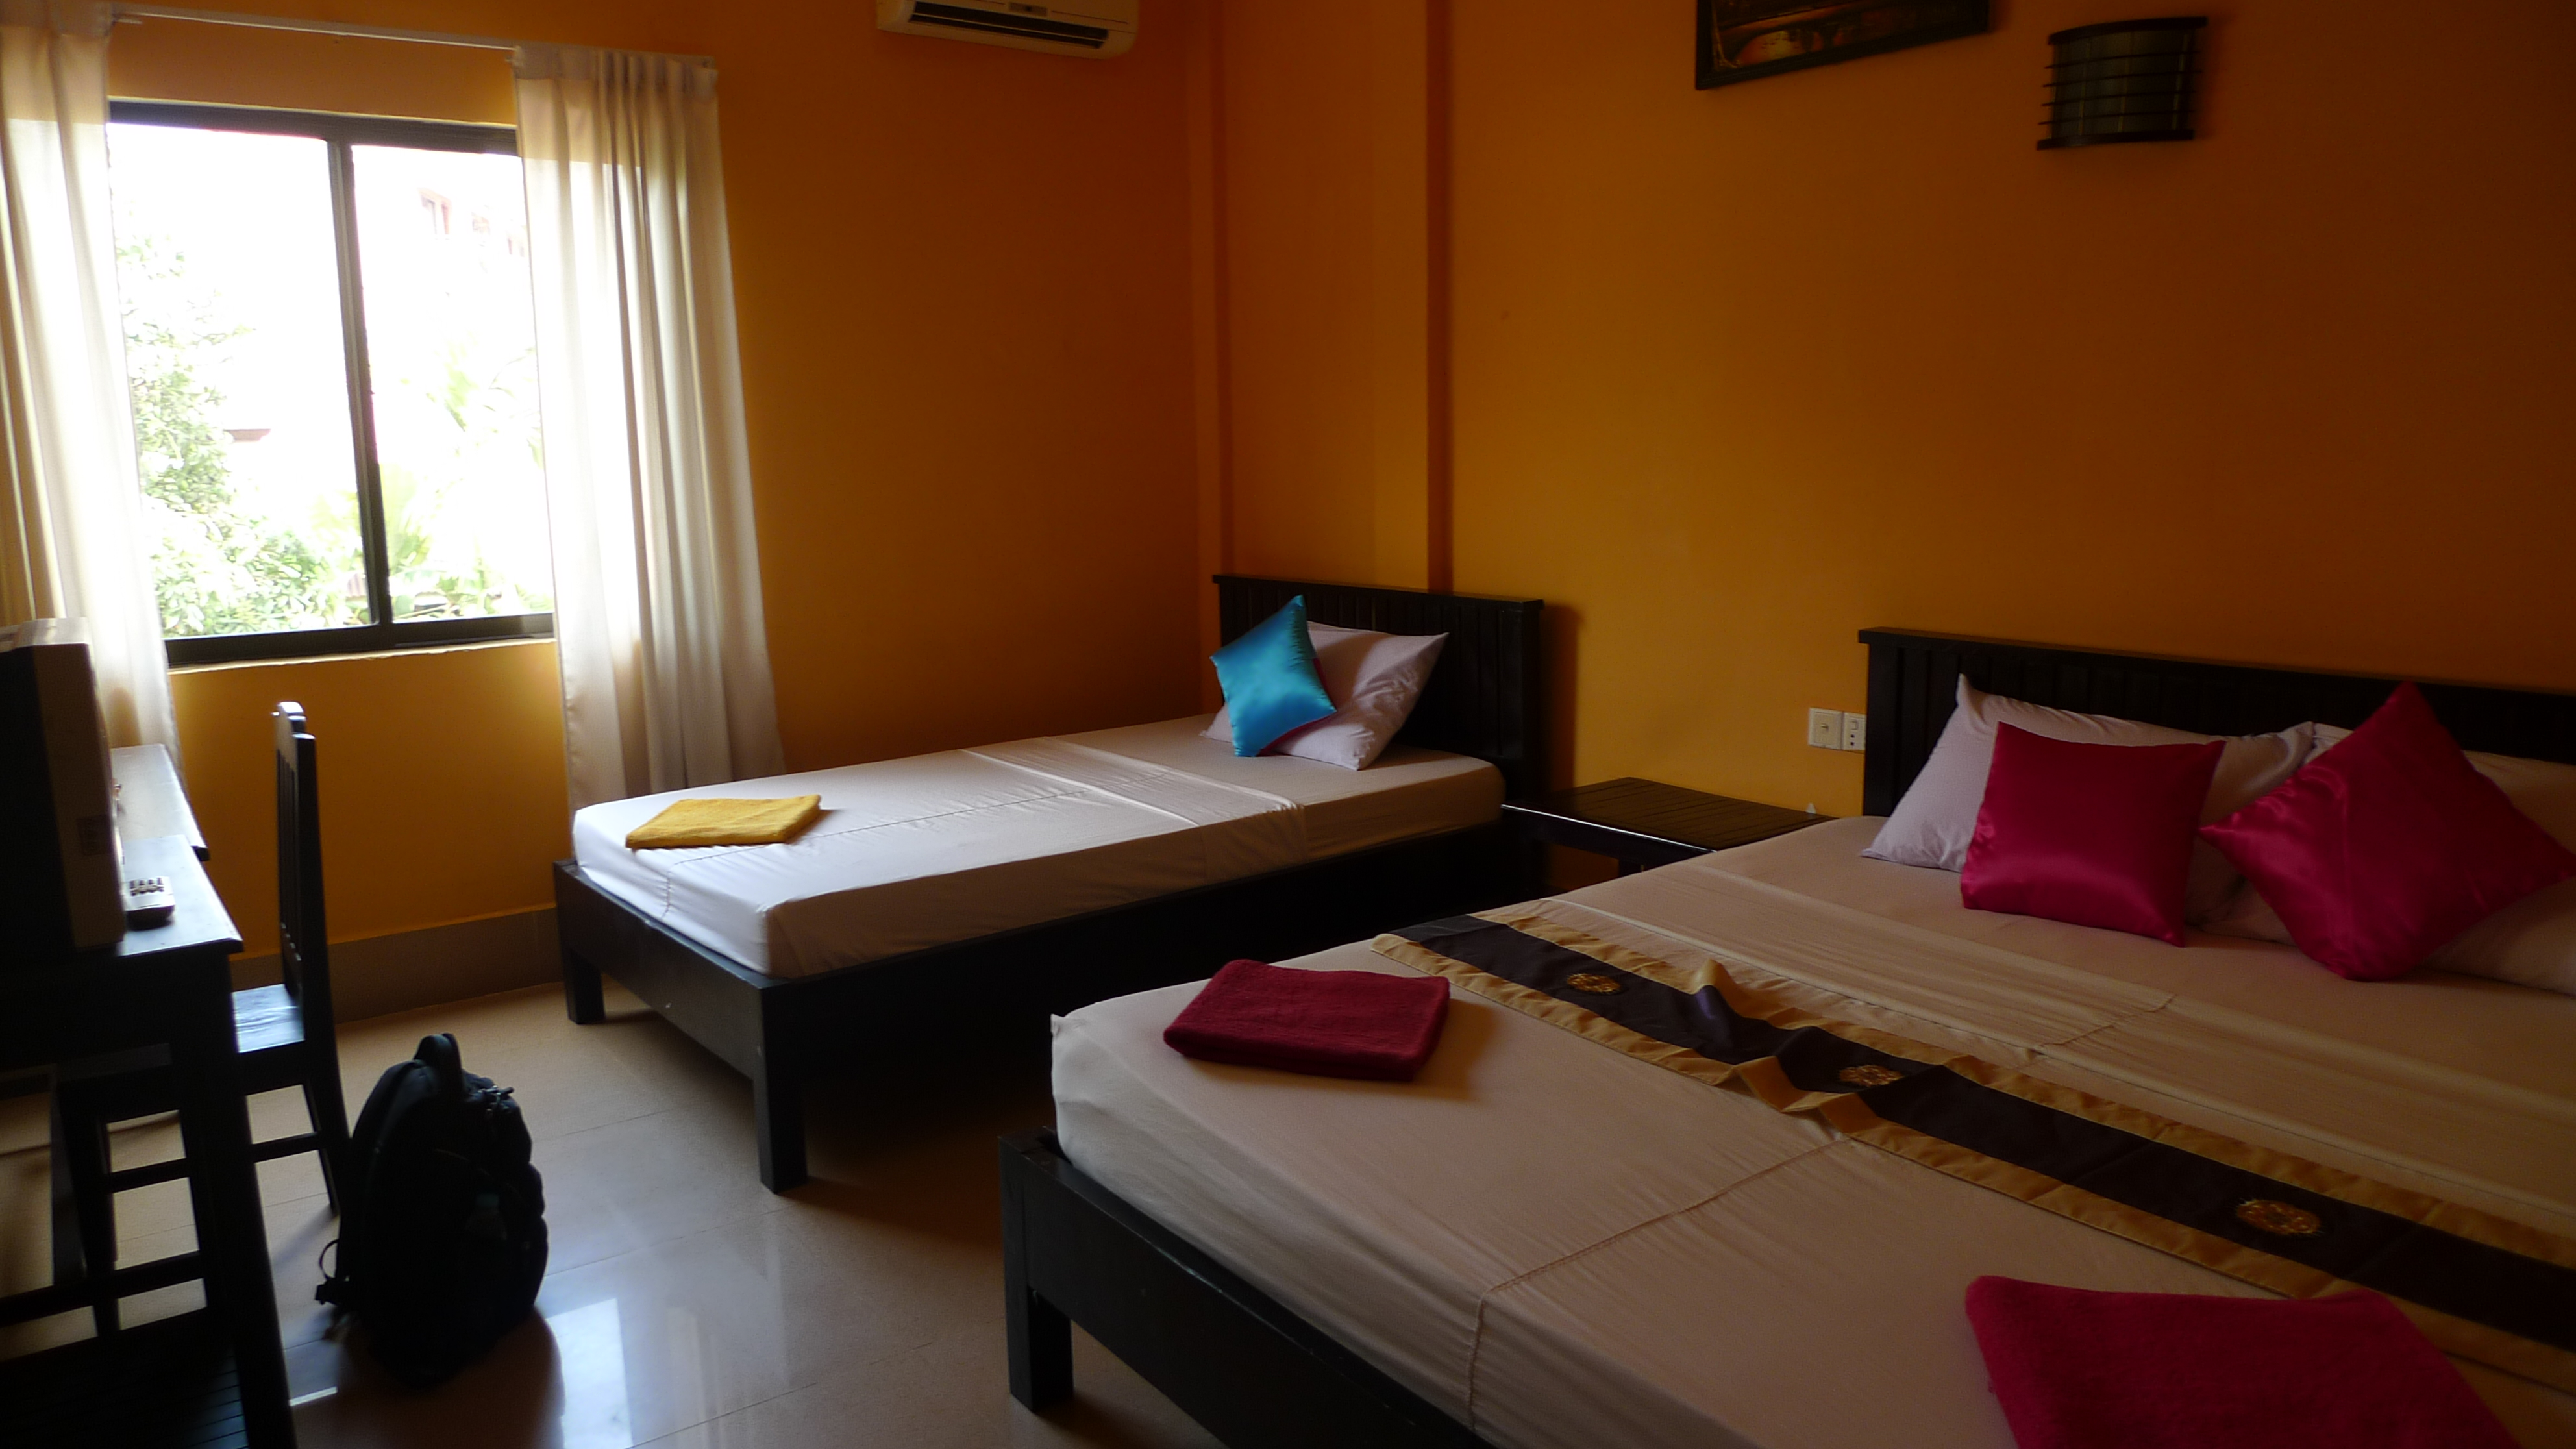 Don't you just find this room inviting? Call your friends now!